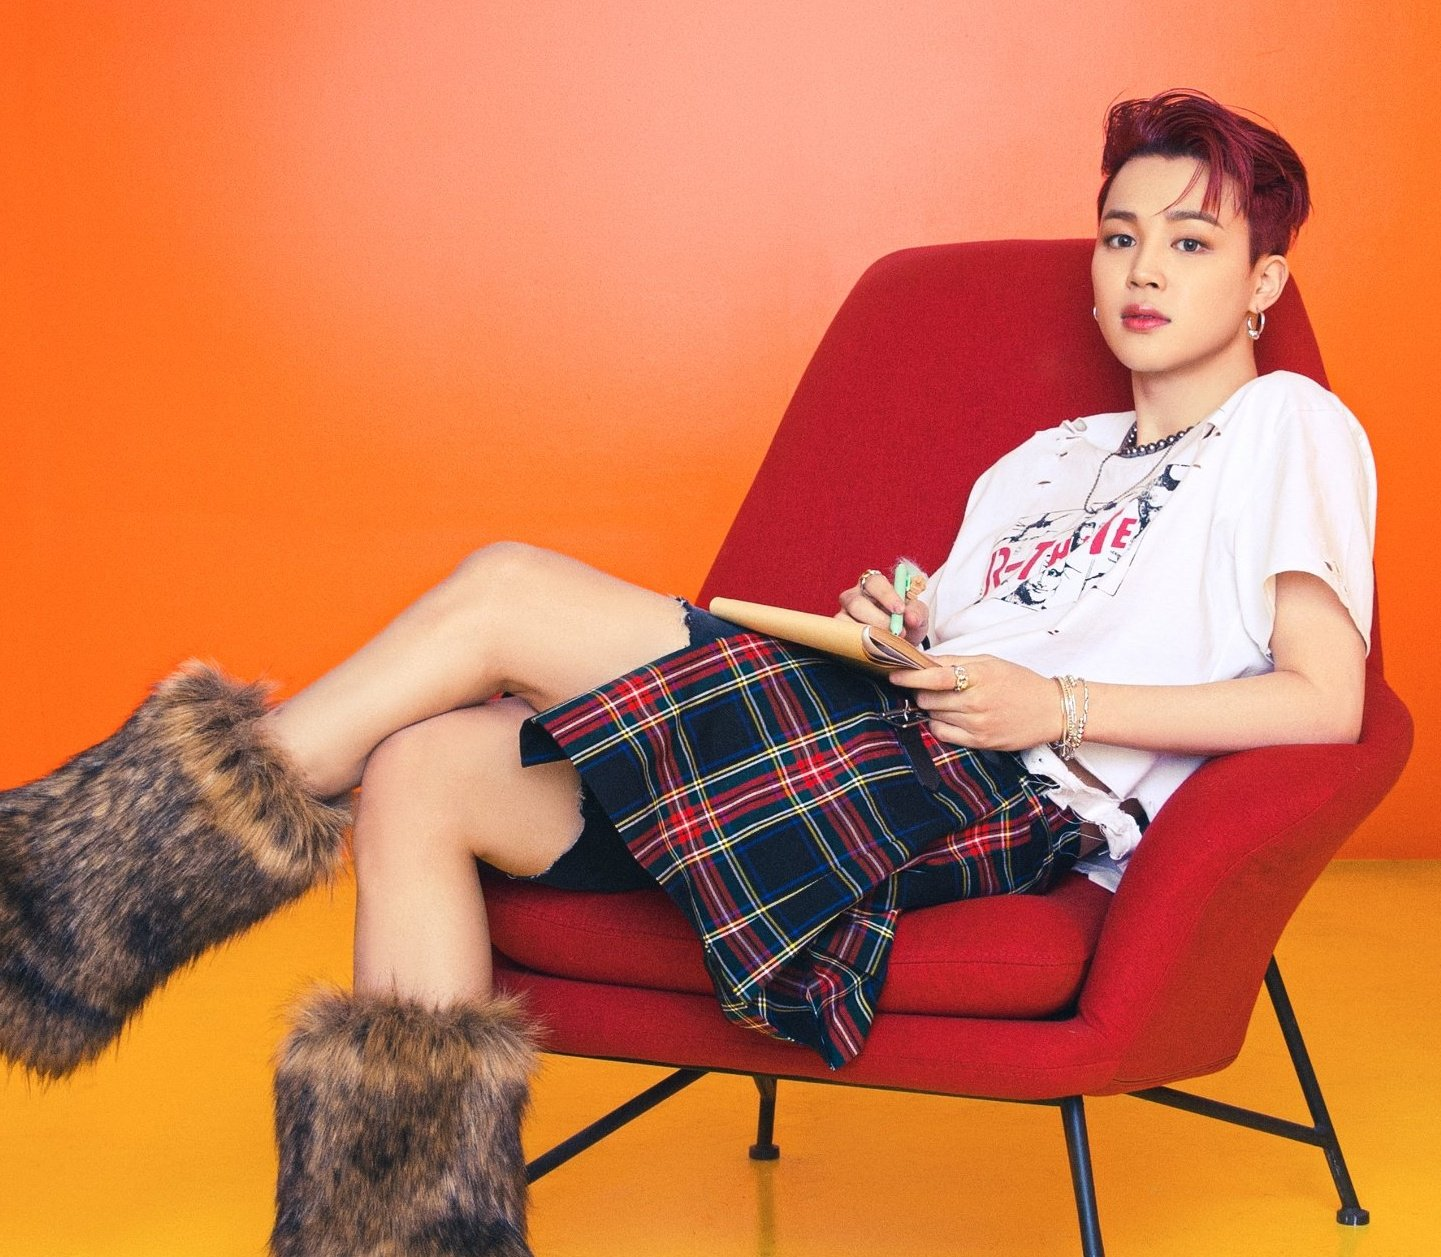 """t⁷ᴾᵀᴰ ♡ BTS on Twitter: """"PARK JIMIN IN A SKIRT, RED HAIR AND FURRY  BOOTS???????????? TRULY KOREA'S IT BOY THING… """""""